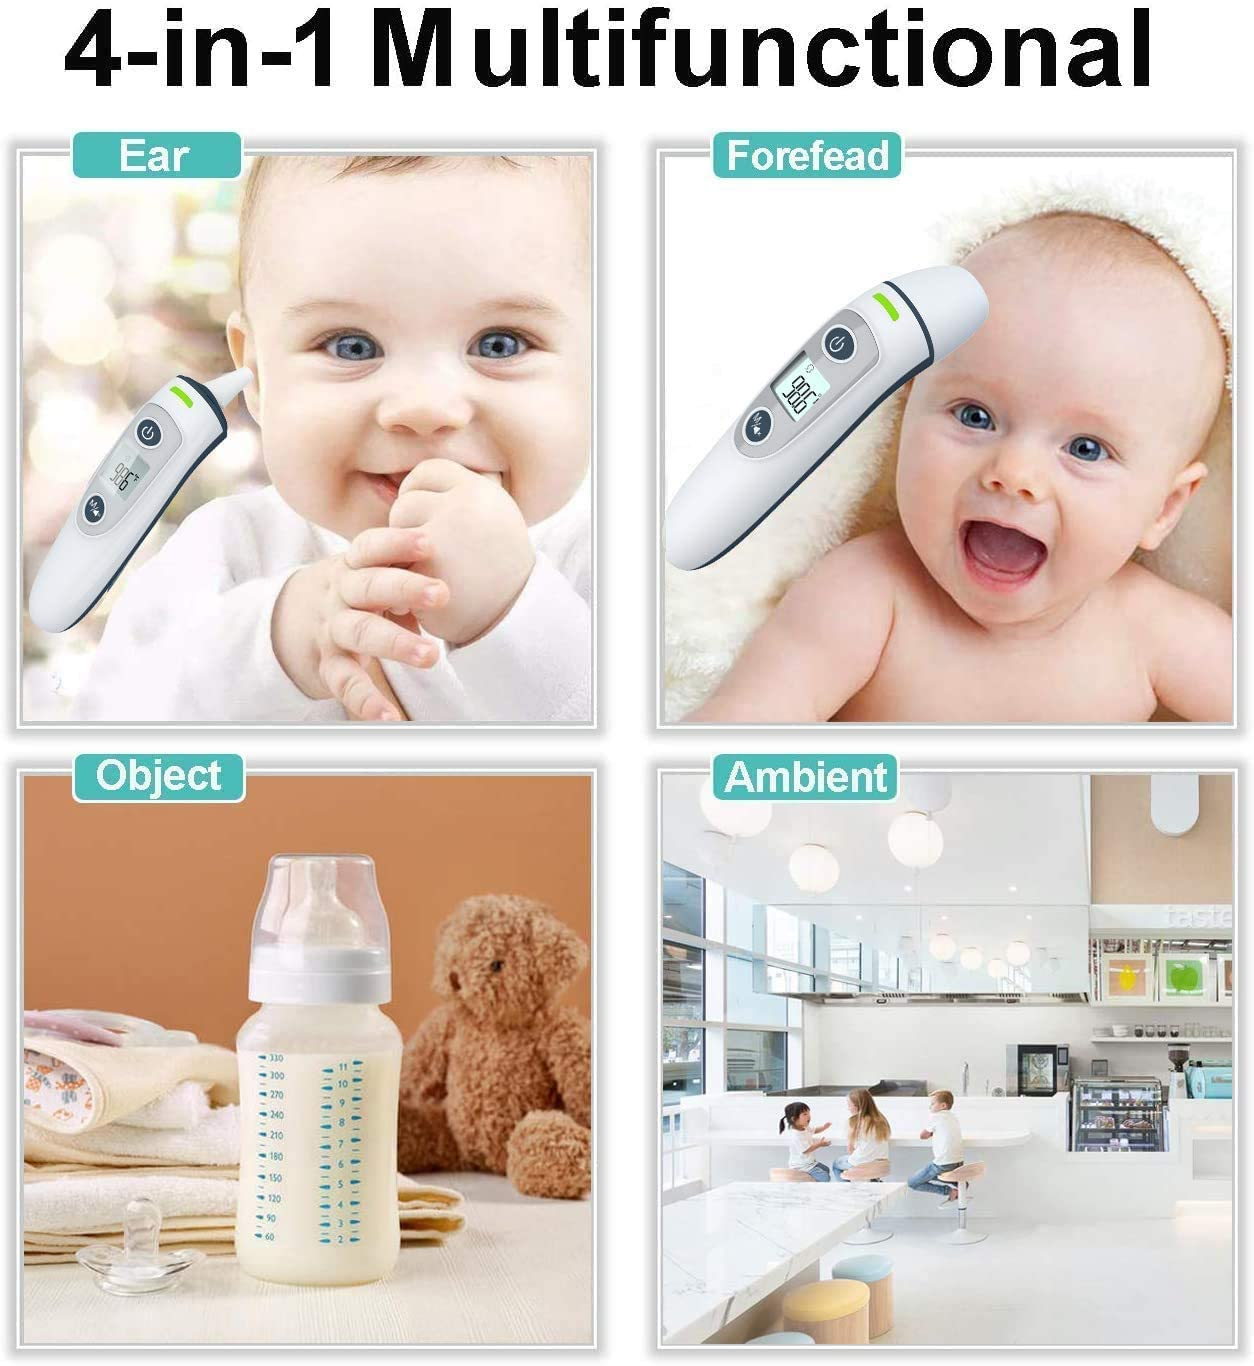 3-5 Ship Digital Thermometer for Adults,Infrared Ear Thermometer with Fever Alarm,Accurate Forehead Thermometer No Contact Thermometer for Baby//Child